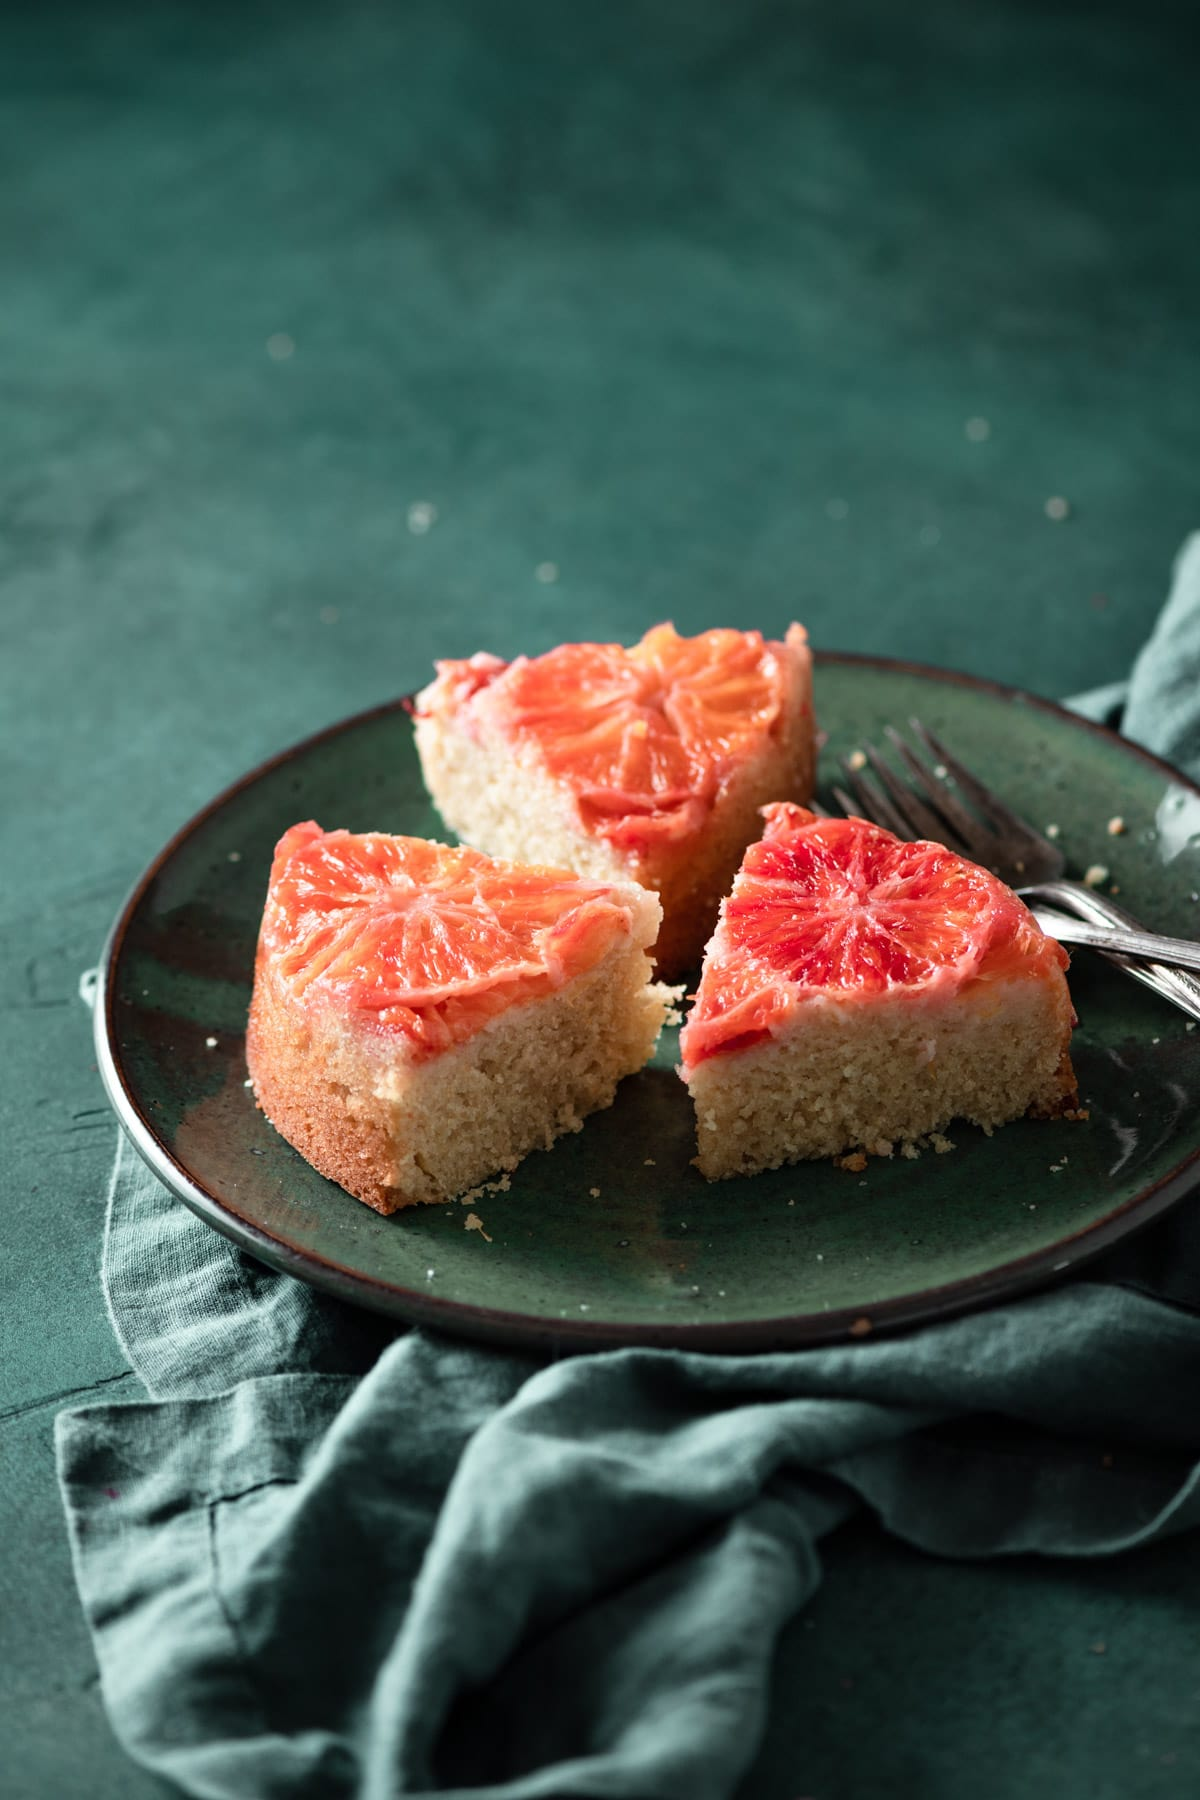 Orange upside down cake recipe with buttermilk.